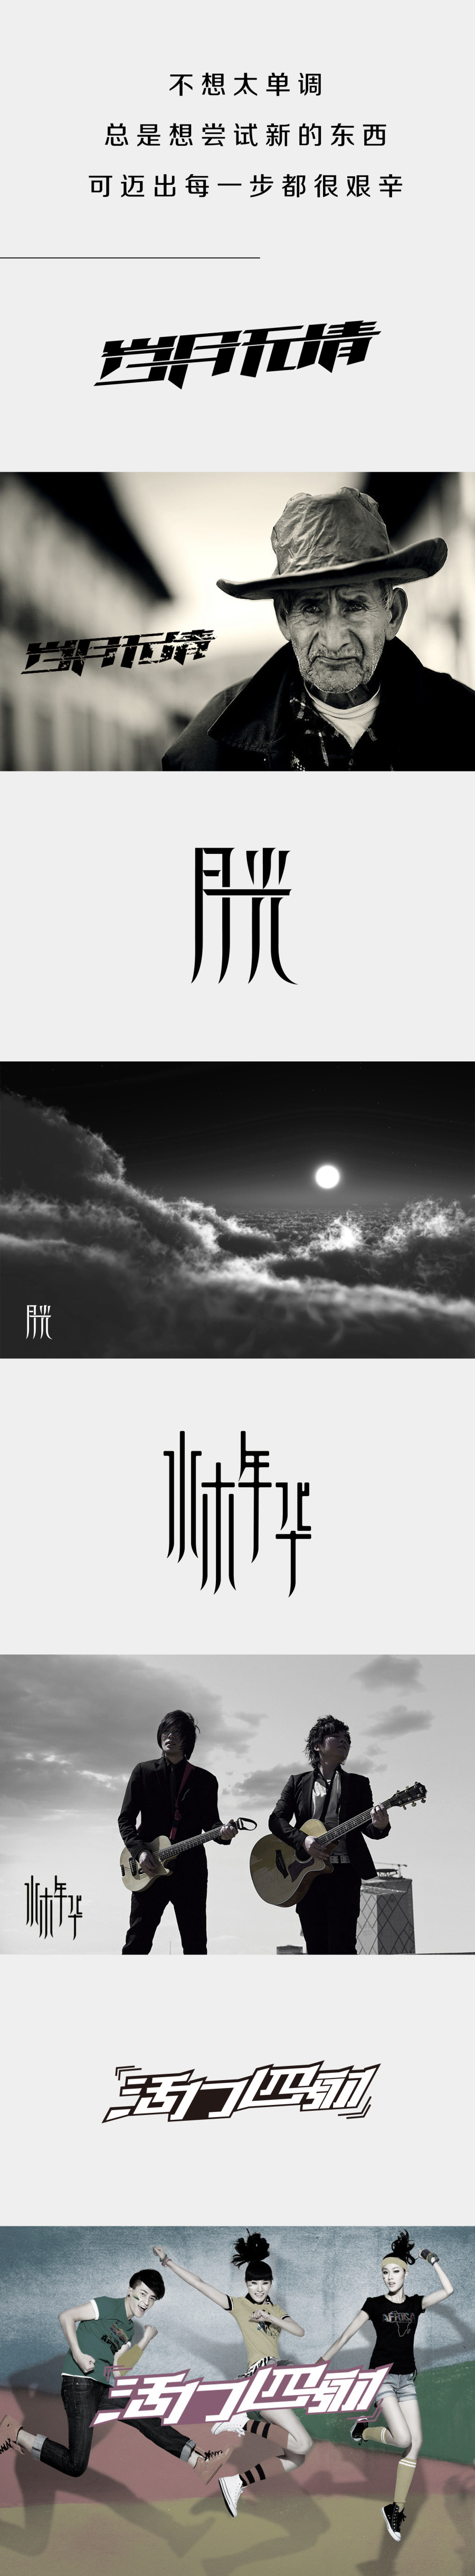 chinesefontdesign.com 2016 07 11 10 03 01 100+ Incredible Examples Of Blind Chinese Font Logo Style Designs